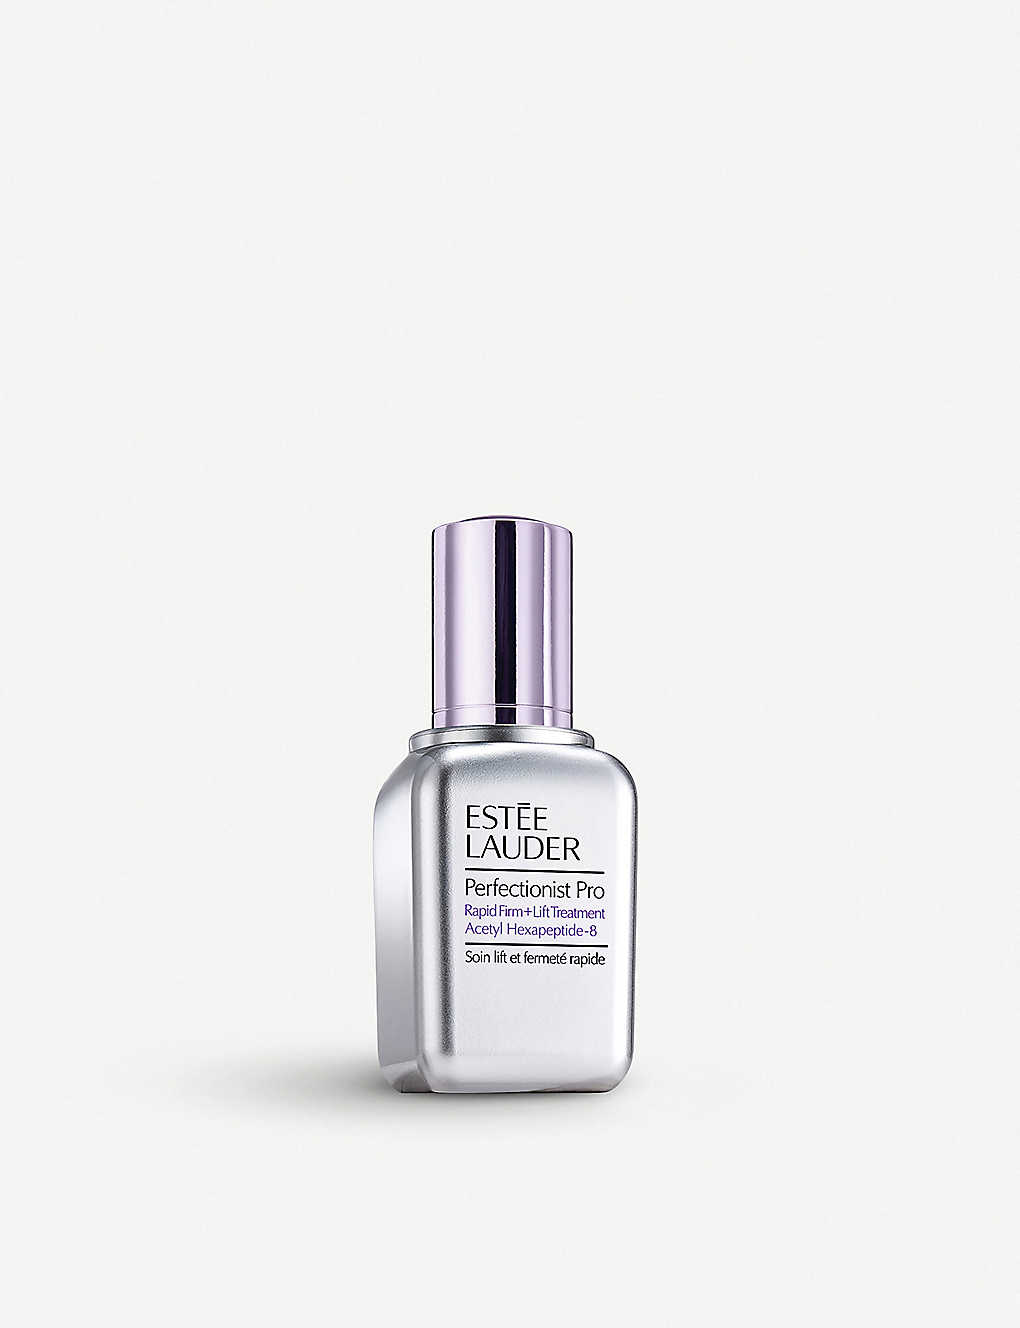 ESTEE LAUDER: Perfectionist Pro Rapid Firm + Lift Treatment with Acetyl Hexapeptide-8 50ml